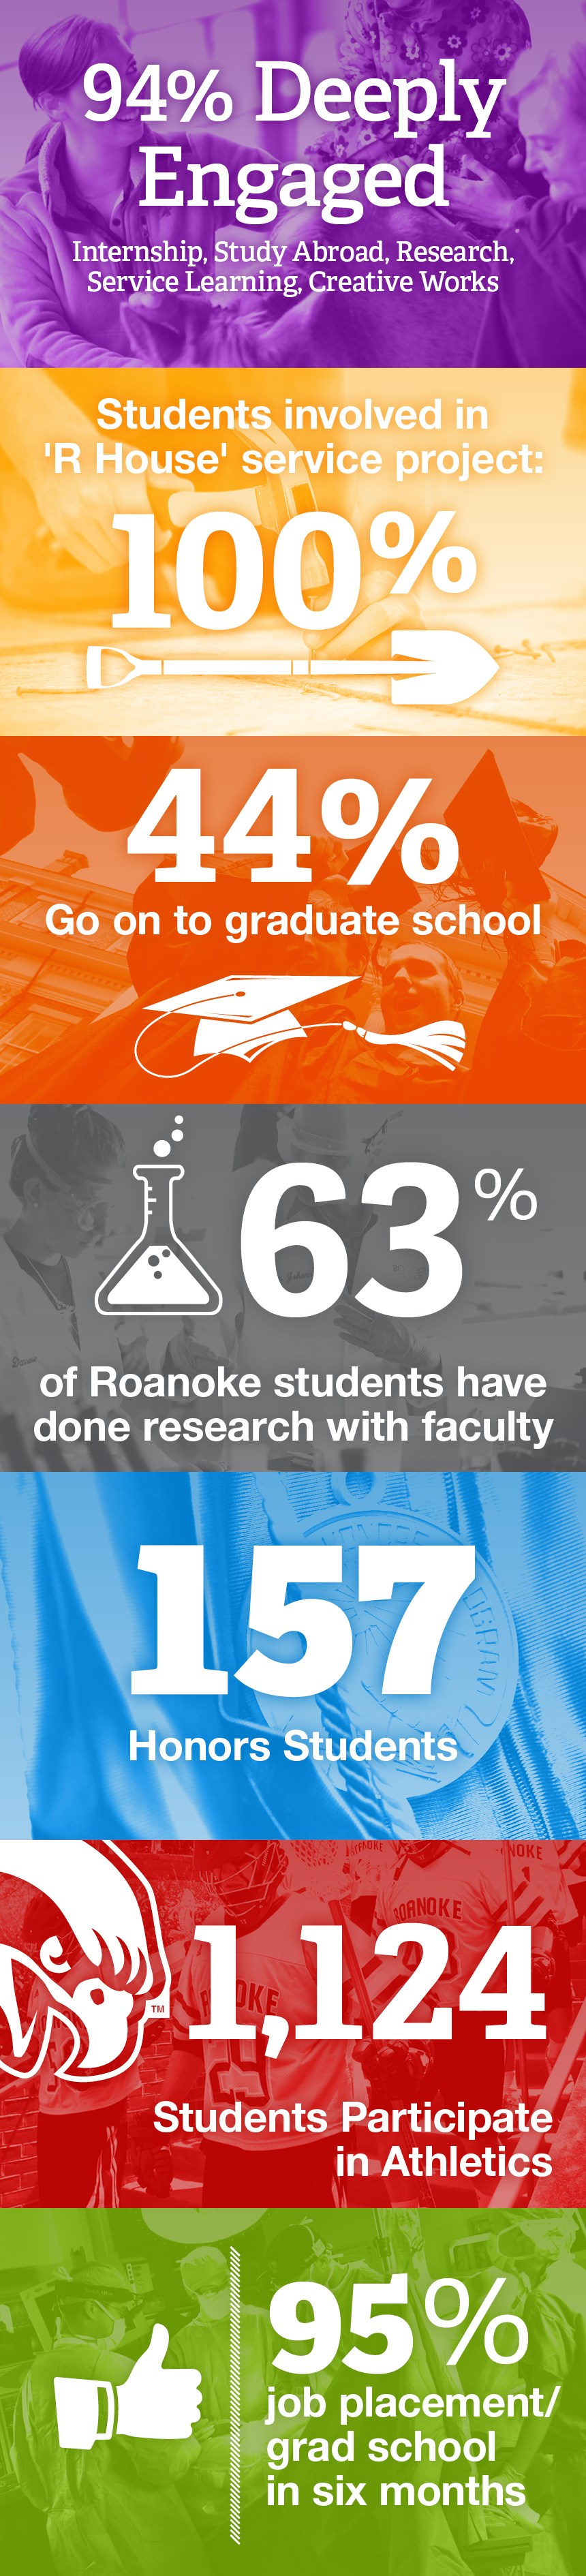 94% engaged in experiential learning, 100% involved in service, 44% go to grad school, 63% do research, 157 honors students, 1124 participate in athletics, 95% get jobs or grad school within 6 mo. of graduation